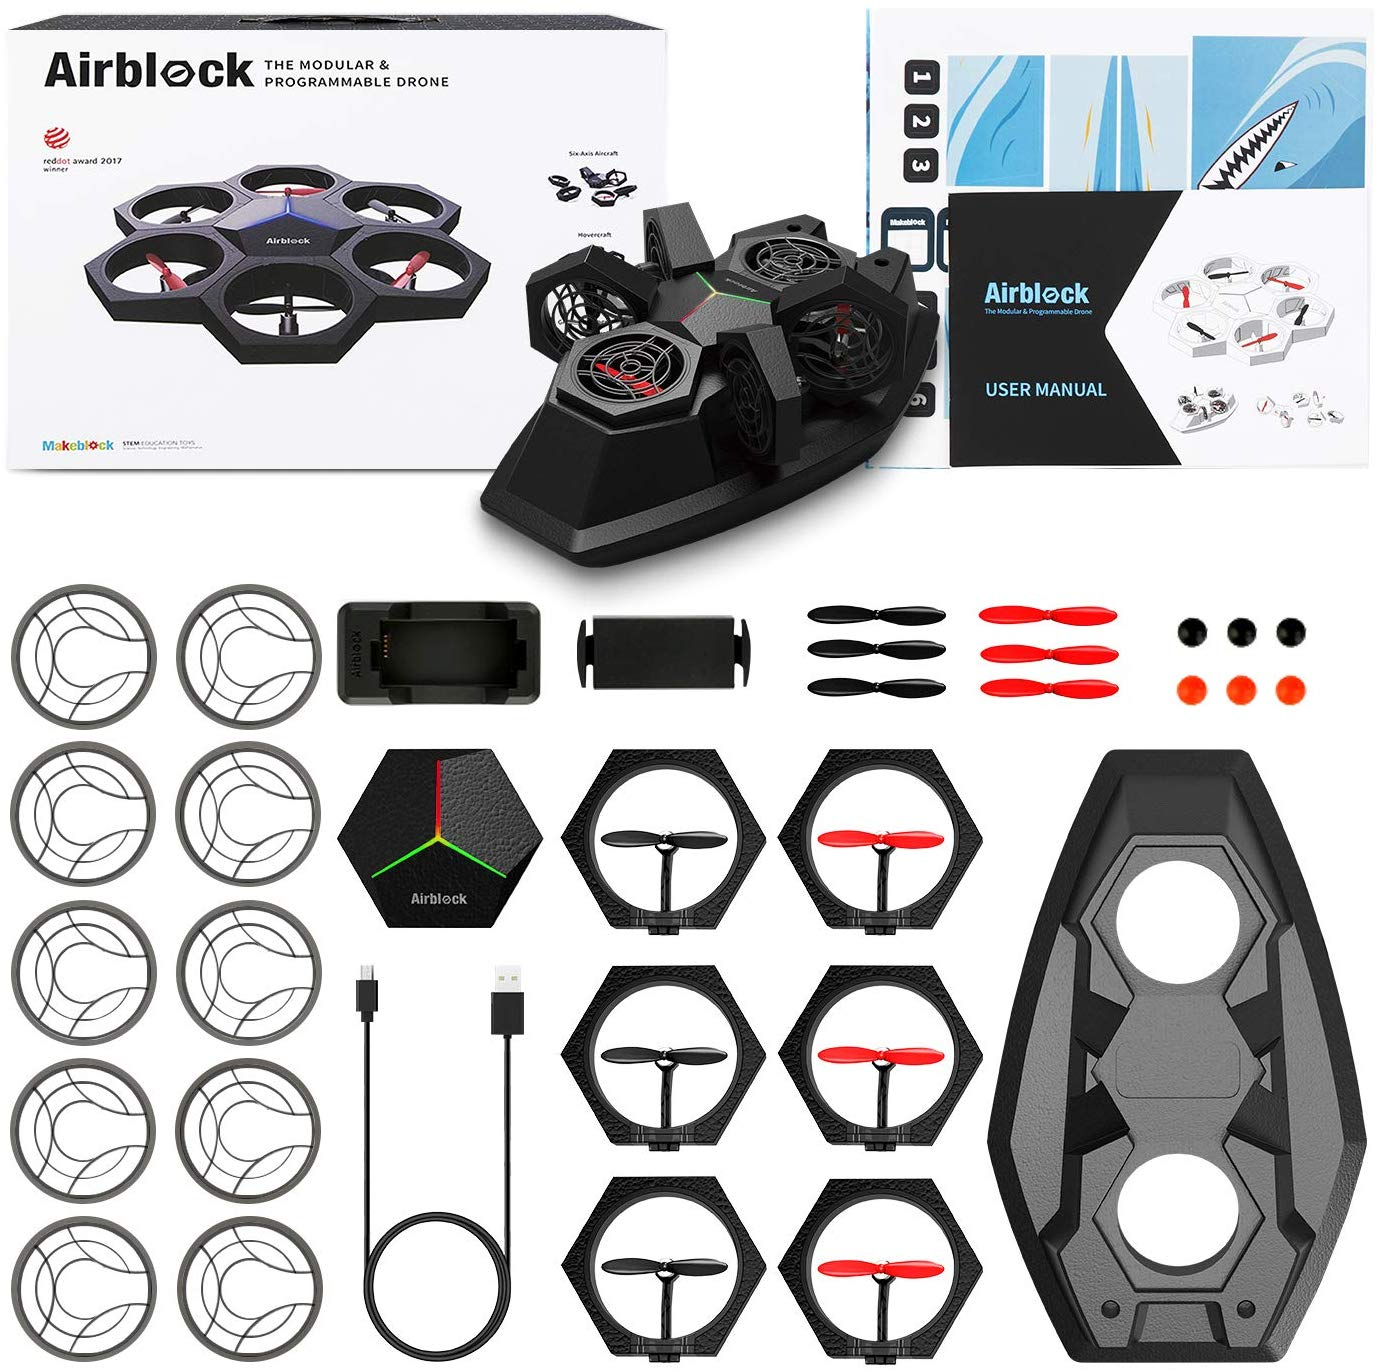 Programmable Drone, Hovercraft Robot